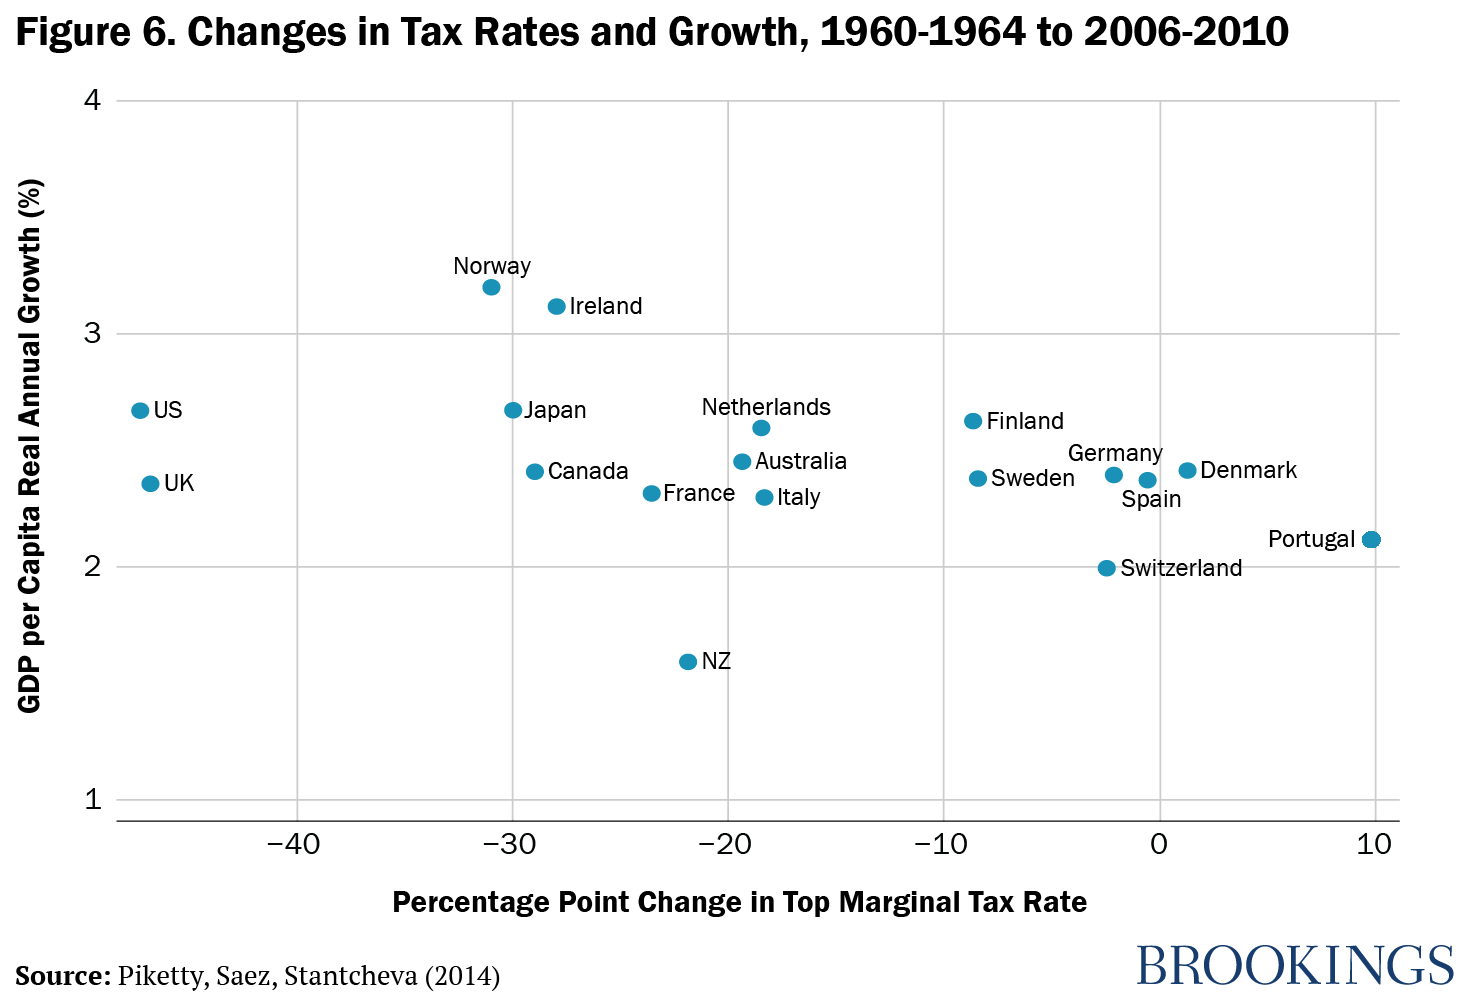 Figure 6. Change in Tax Rates and Growth, 1960-1964 to 2006-2010